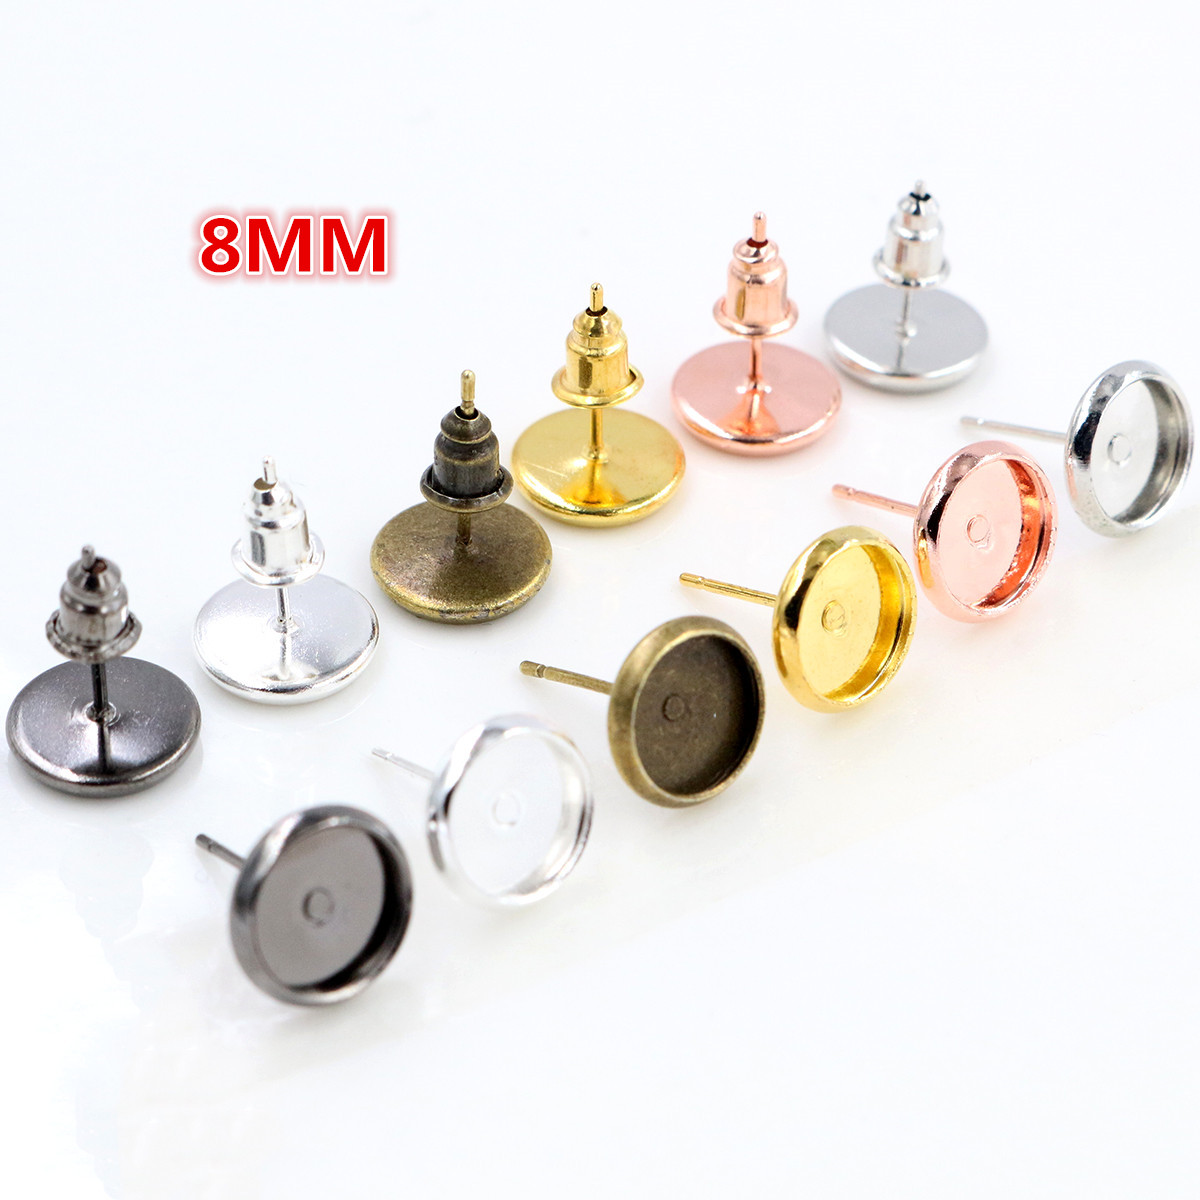 100pcs/lot 8mm High Quality Copper Metal 6 Color Ear Studs Earring Base Findings Cabochon Setting Accessories (Free Back)